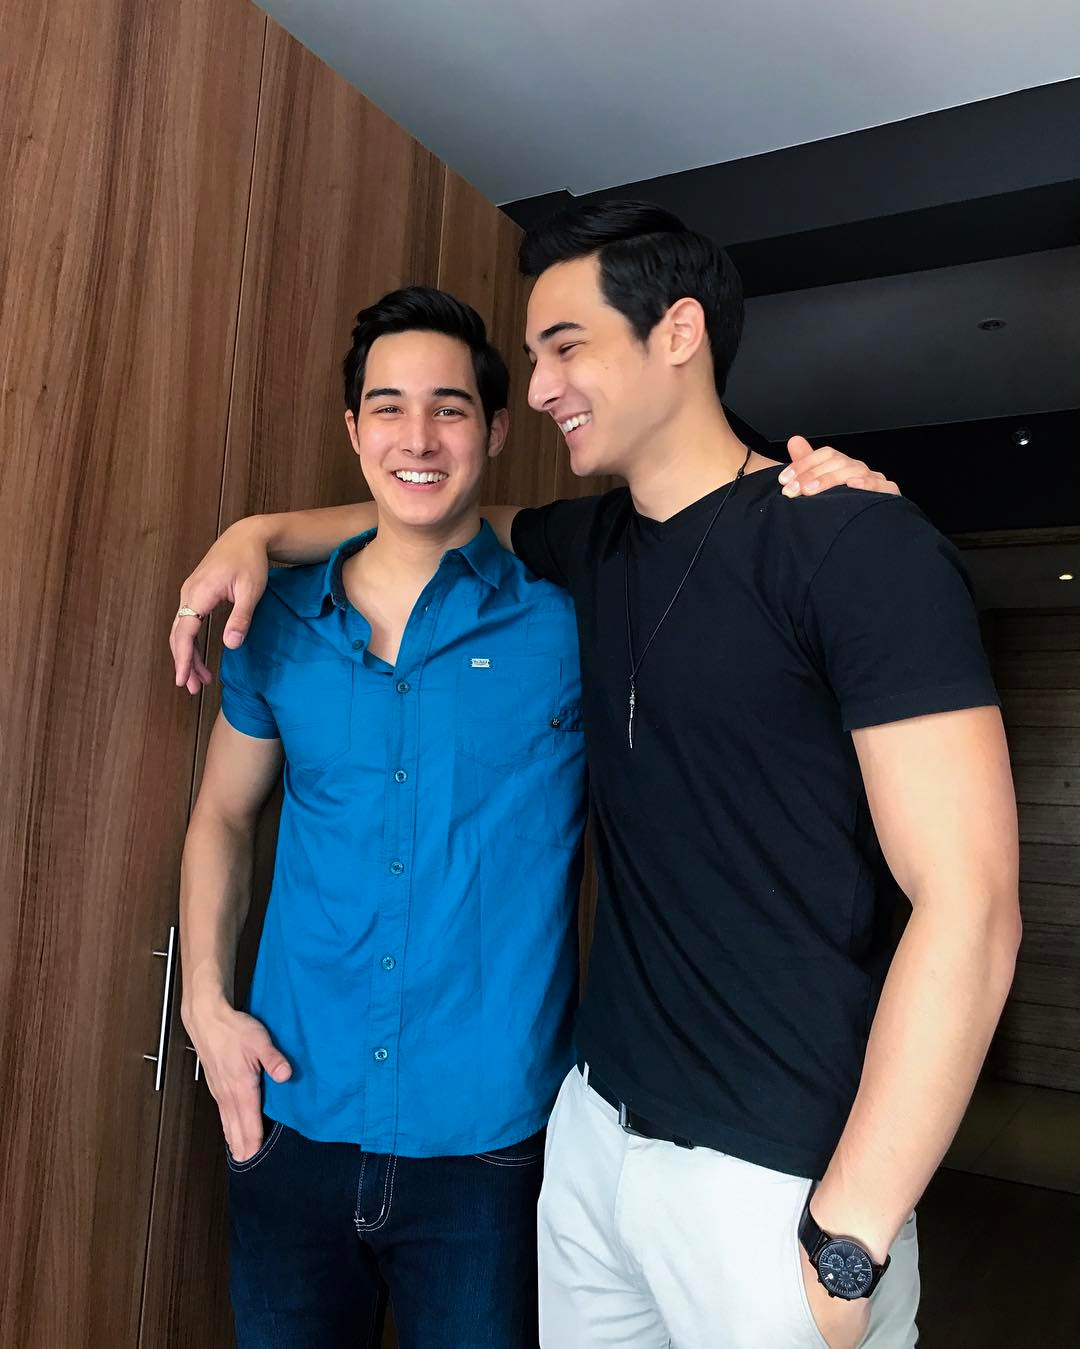 19 Photos of Tanner and Tyler that will make your day twice as good!